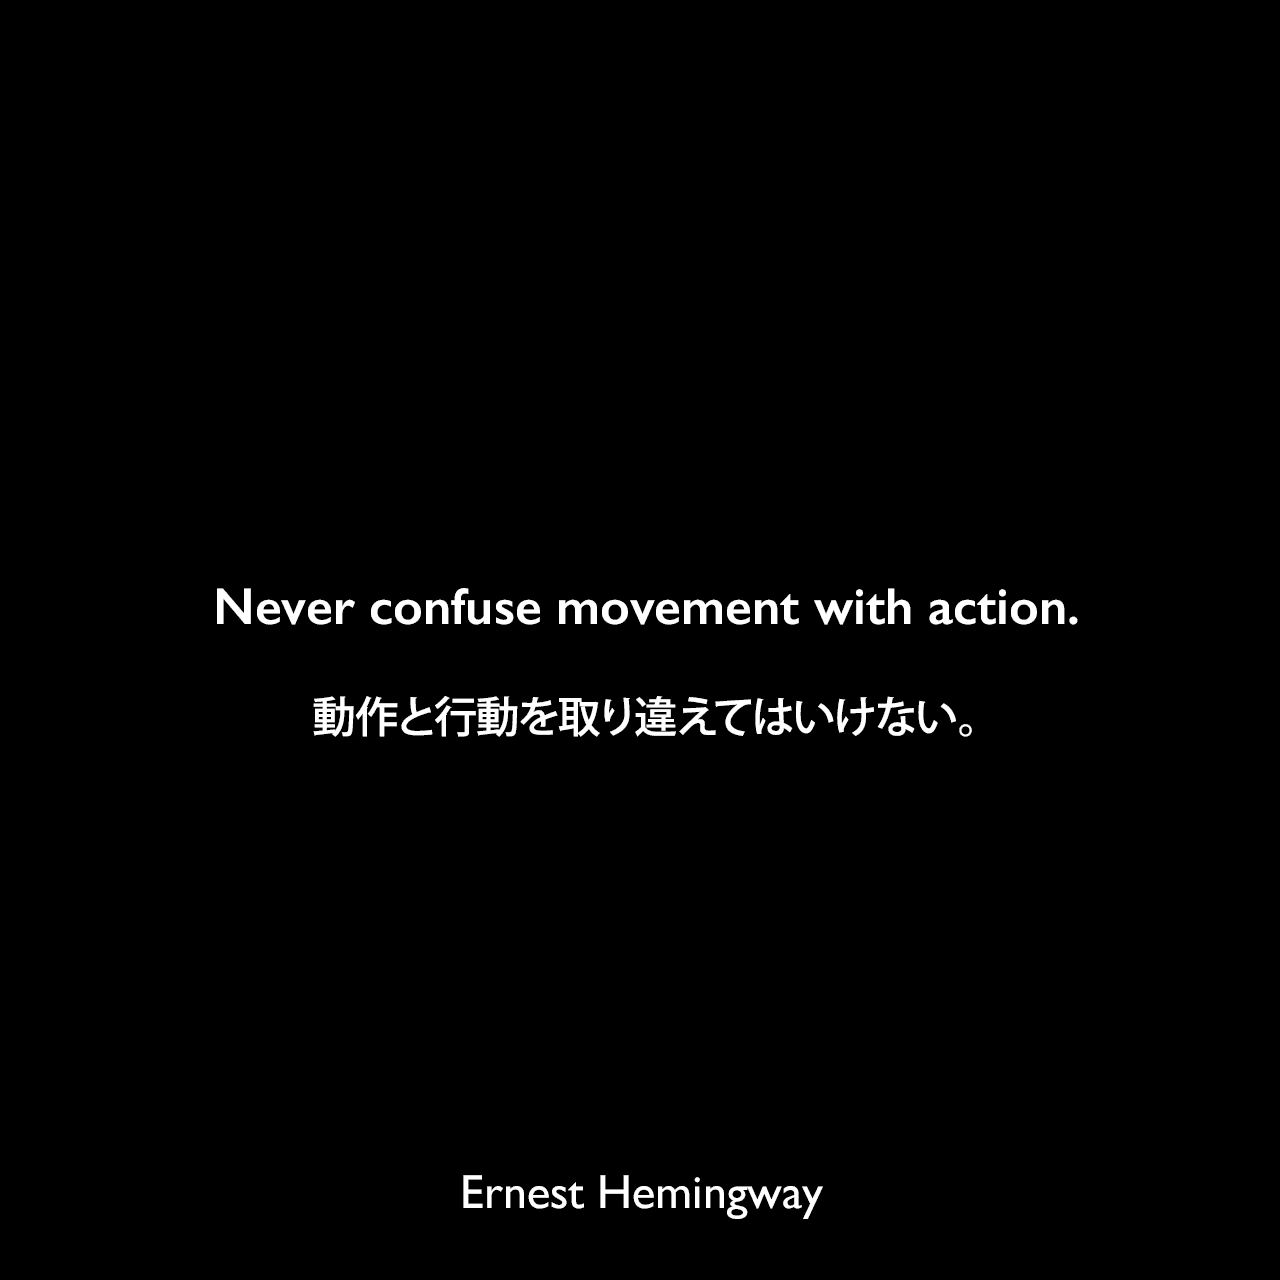 Never confuse movement with action.動作と行動を取り違えてはいけない。Ernest Hemingway